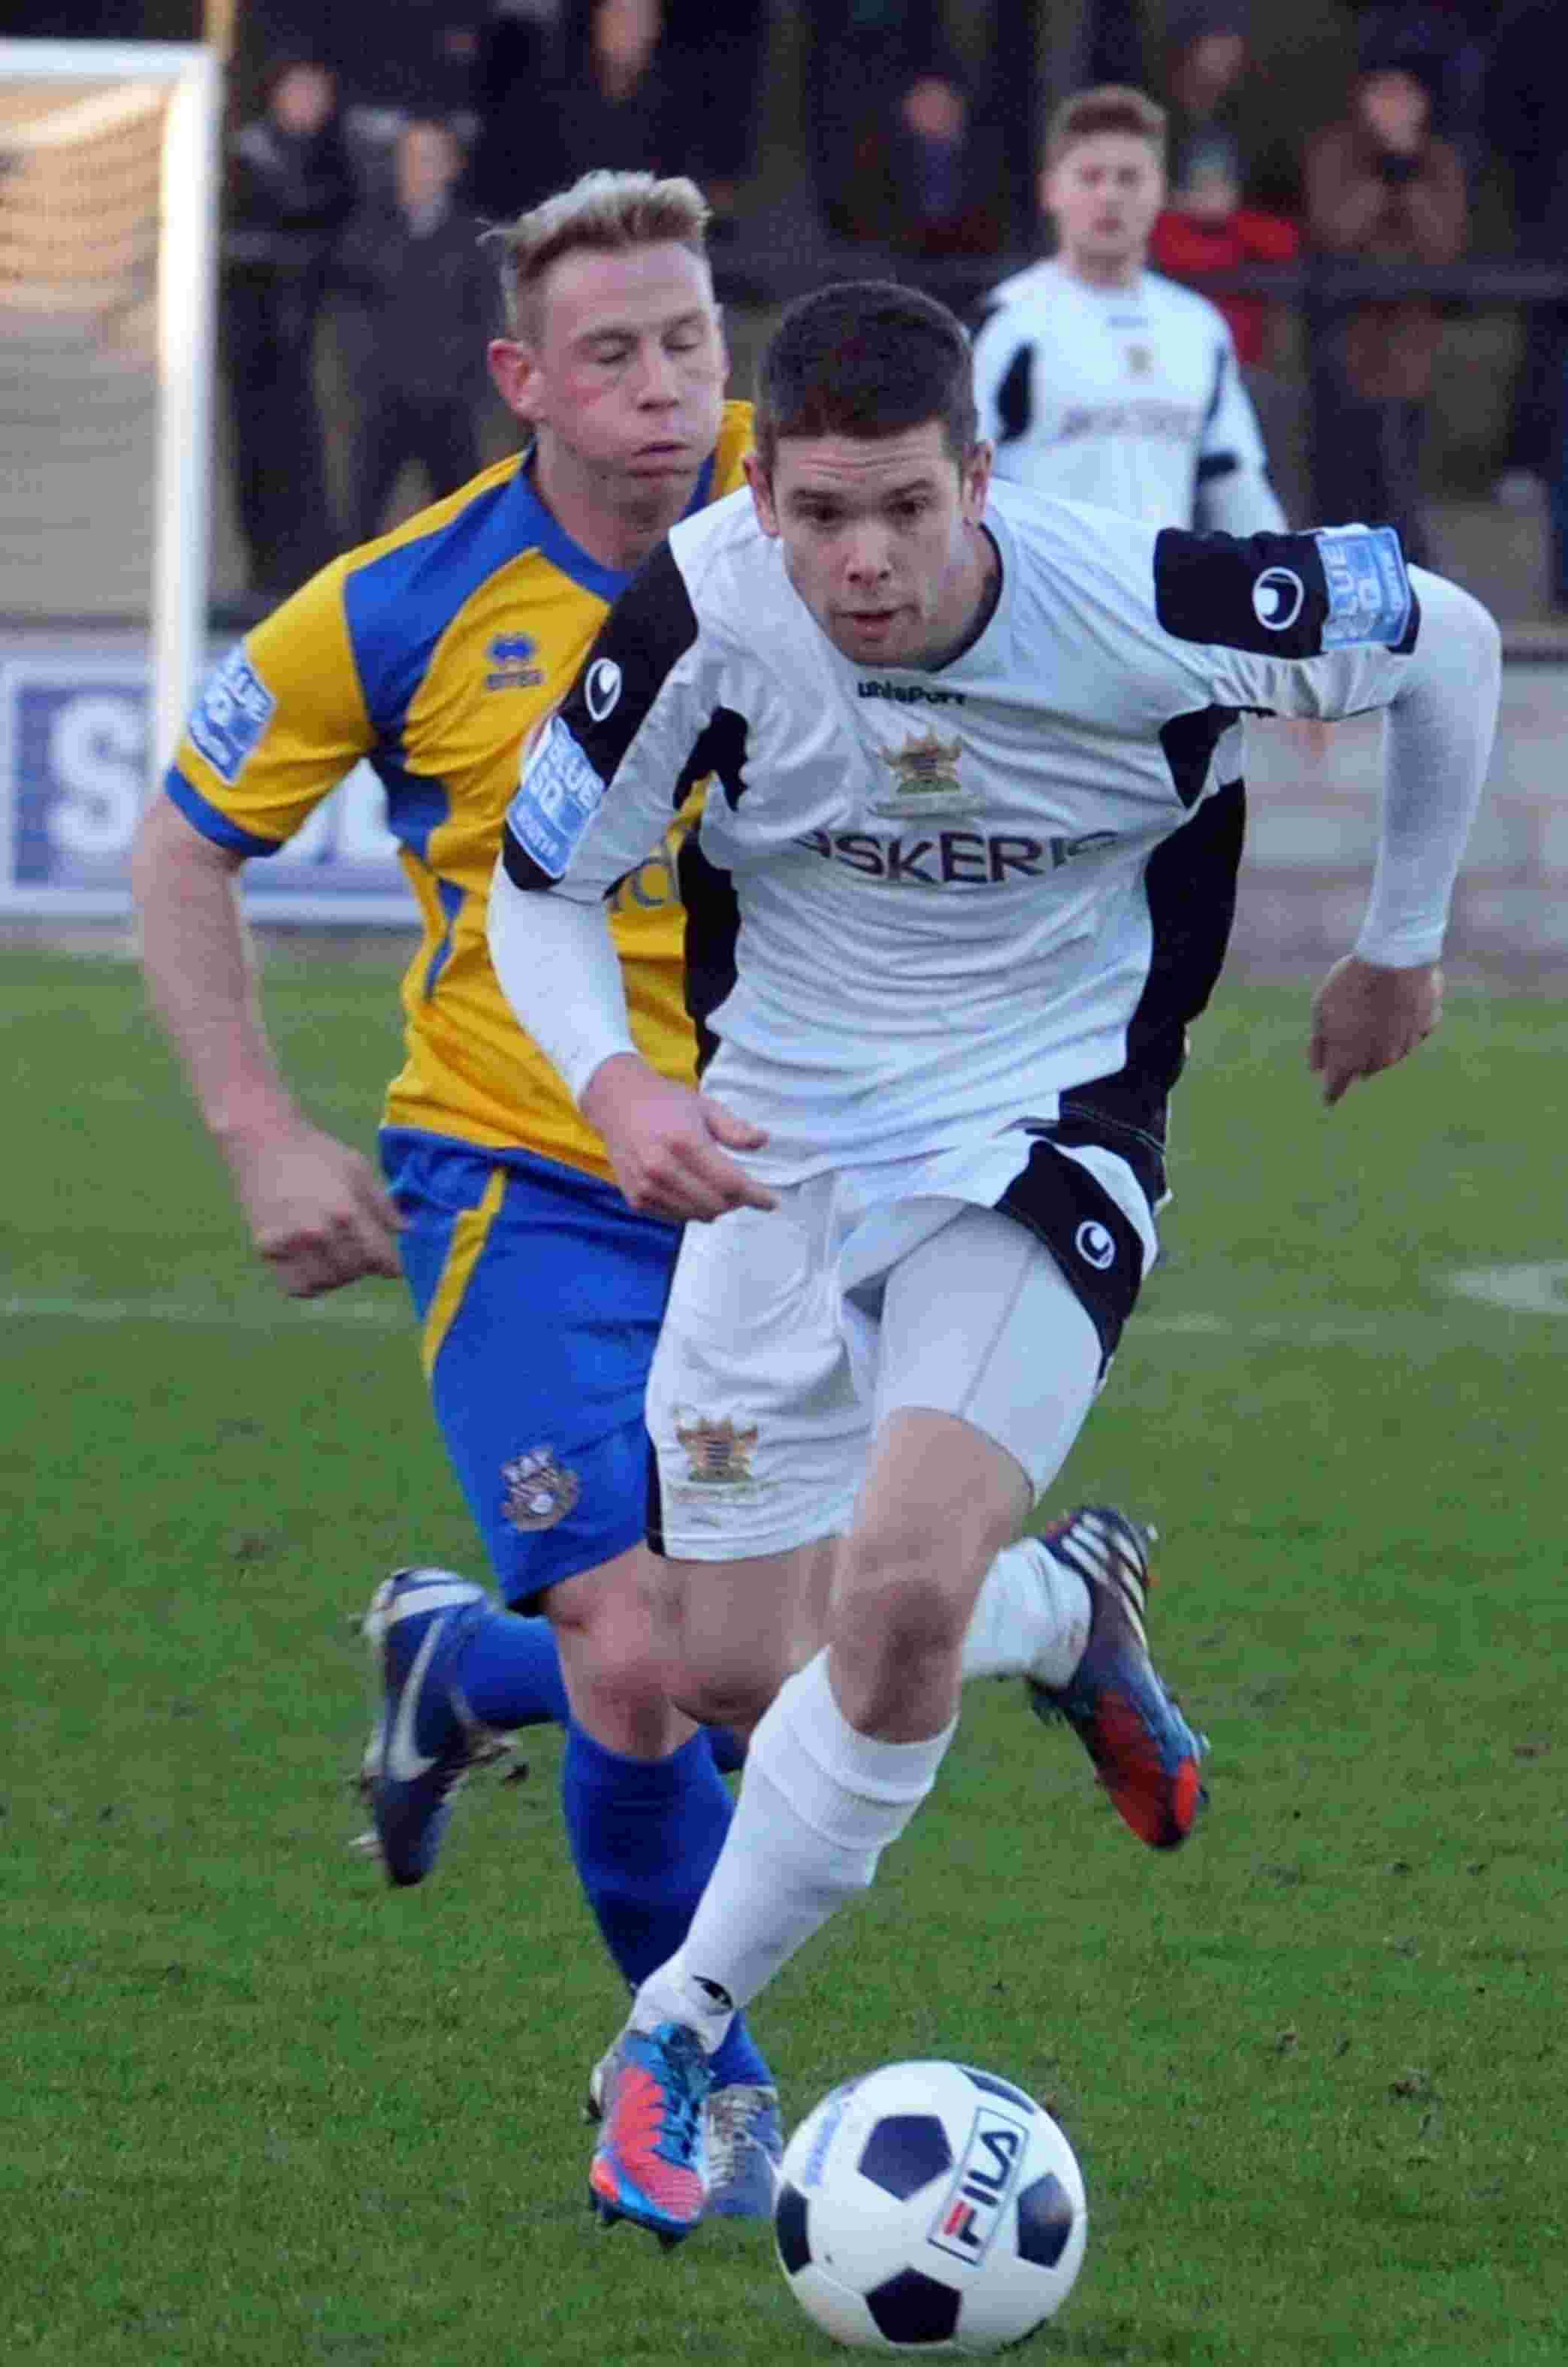 Dan Fitchett, pictured, was on target twice for Salisbury City during their 2-2 draw at Havant & Waterlooville.